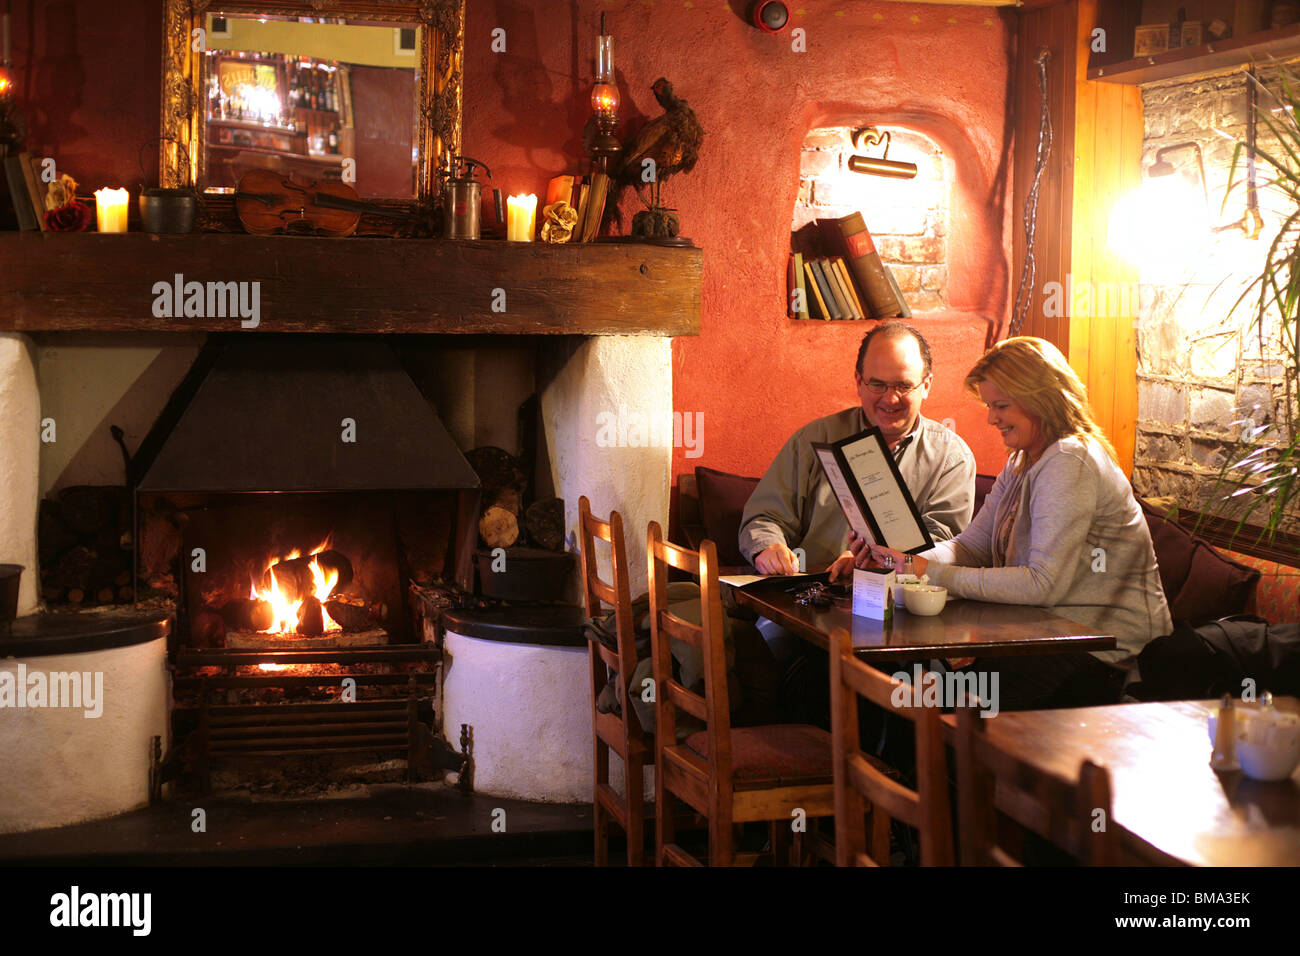 A cosy evening in a rural Irish Pub - Stock Image